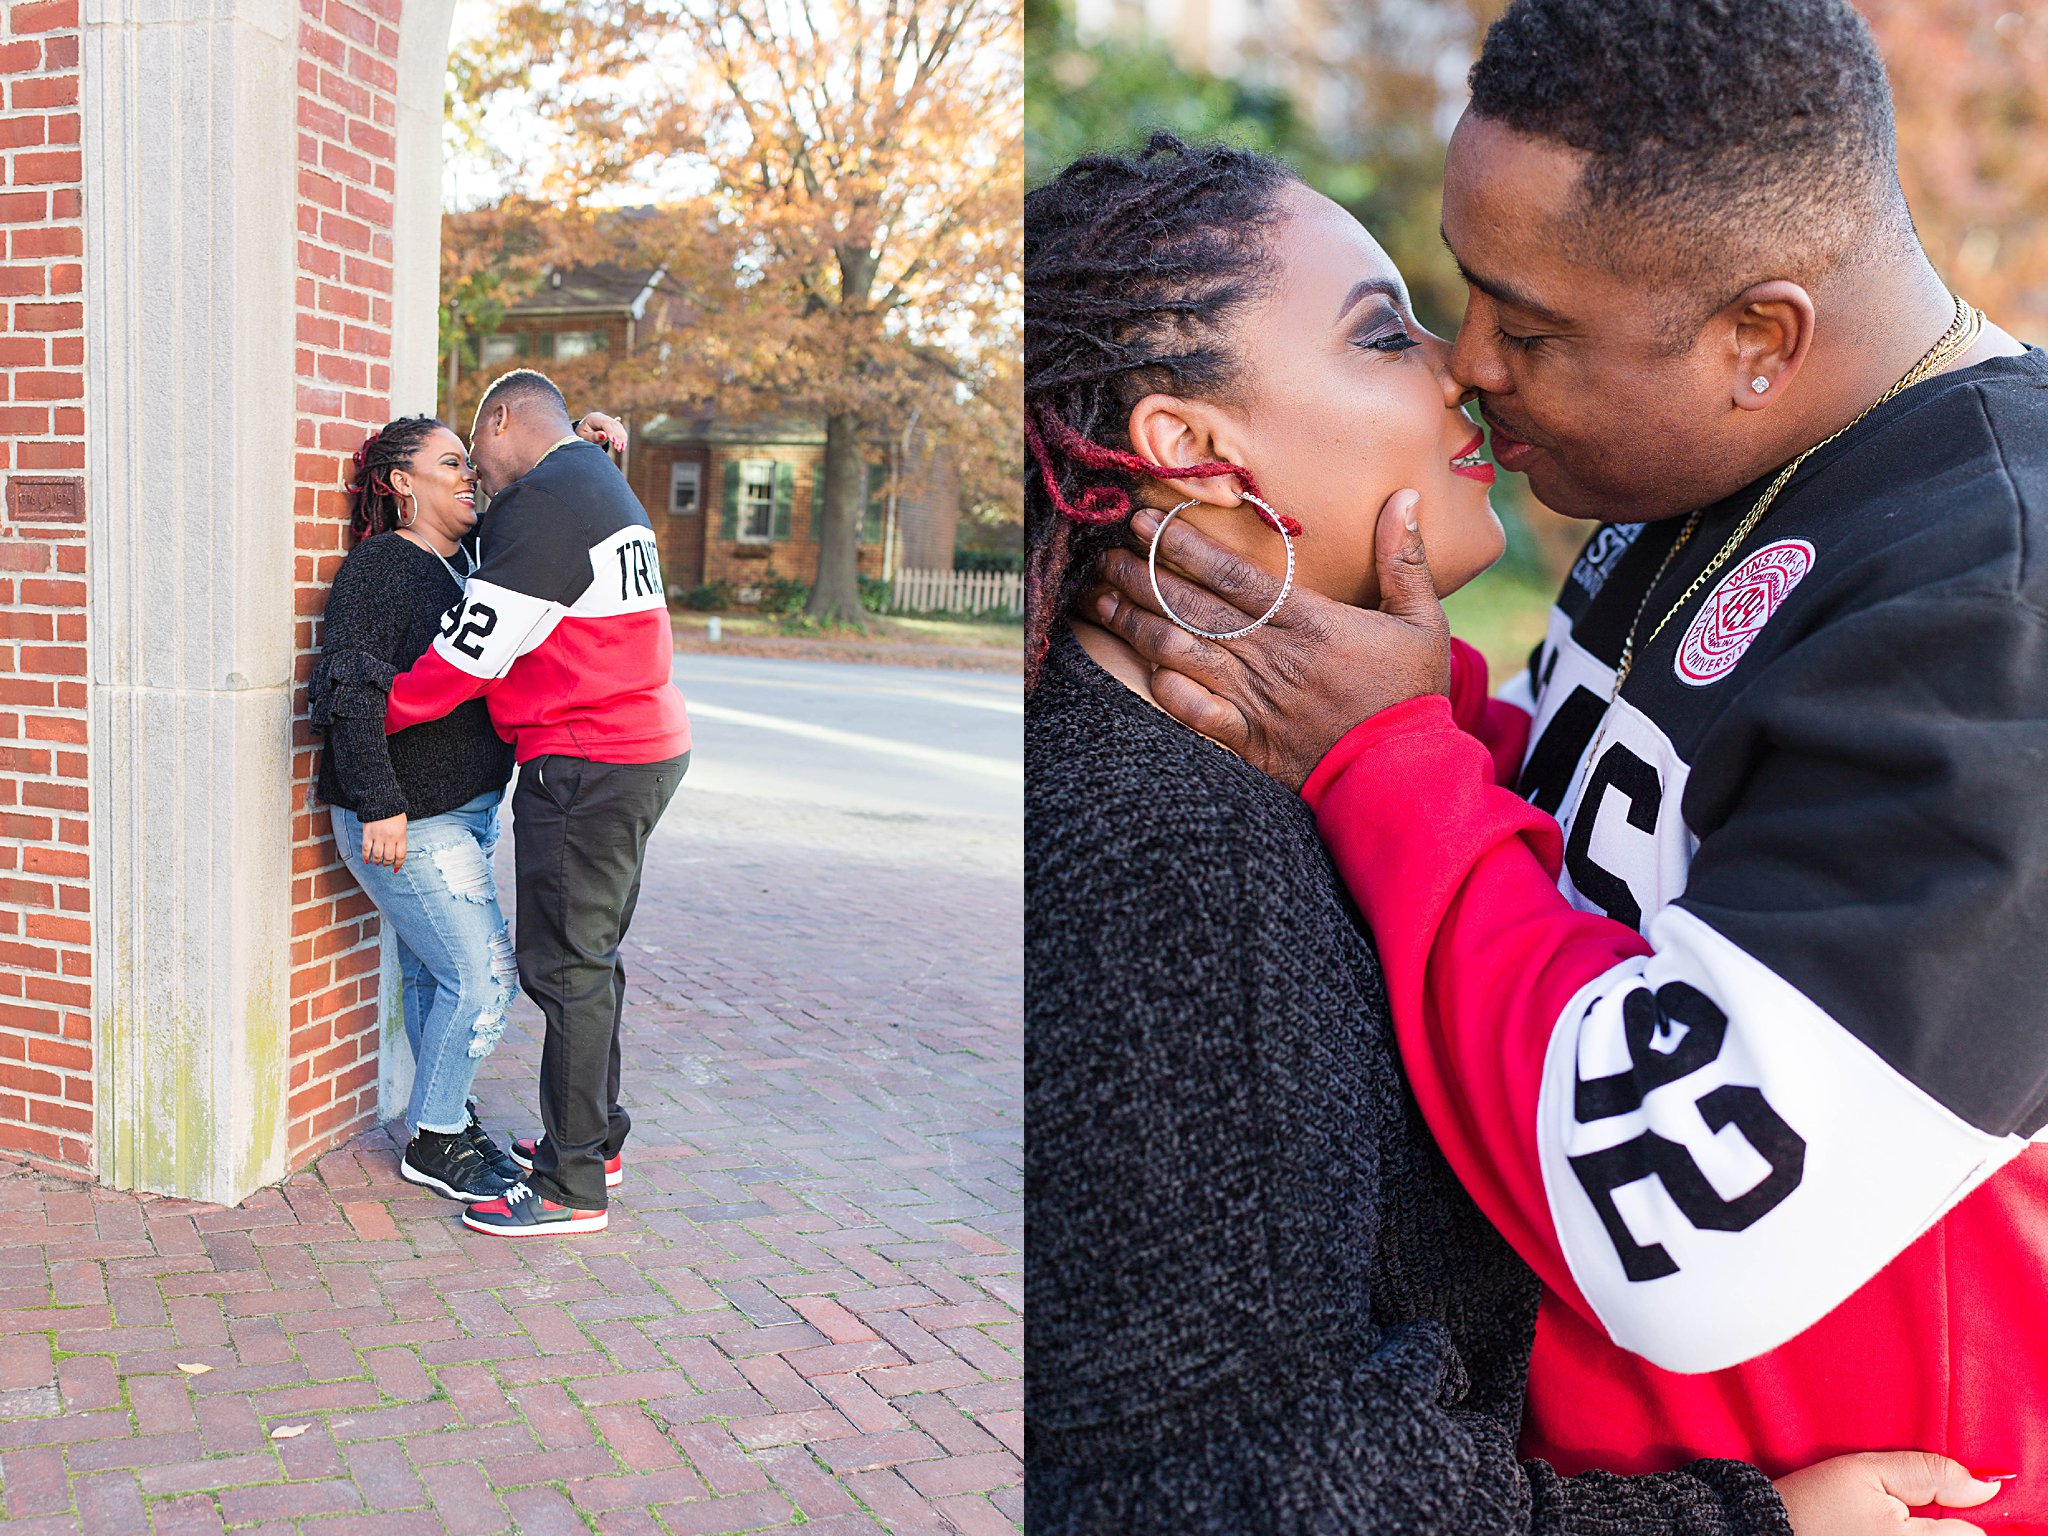 downtown_portsmouth_engagement_session_0468.jpg